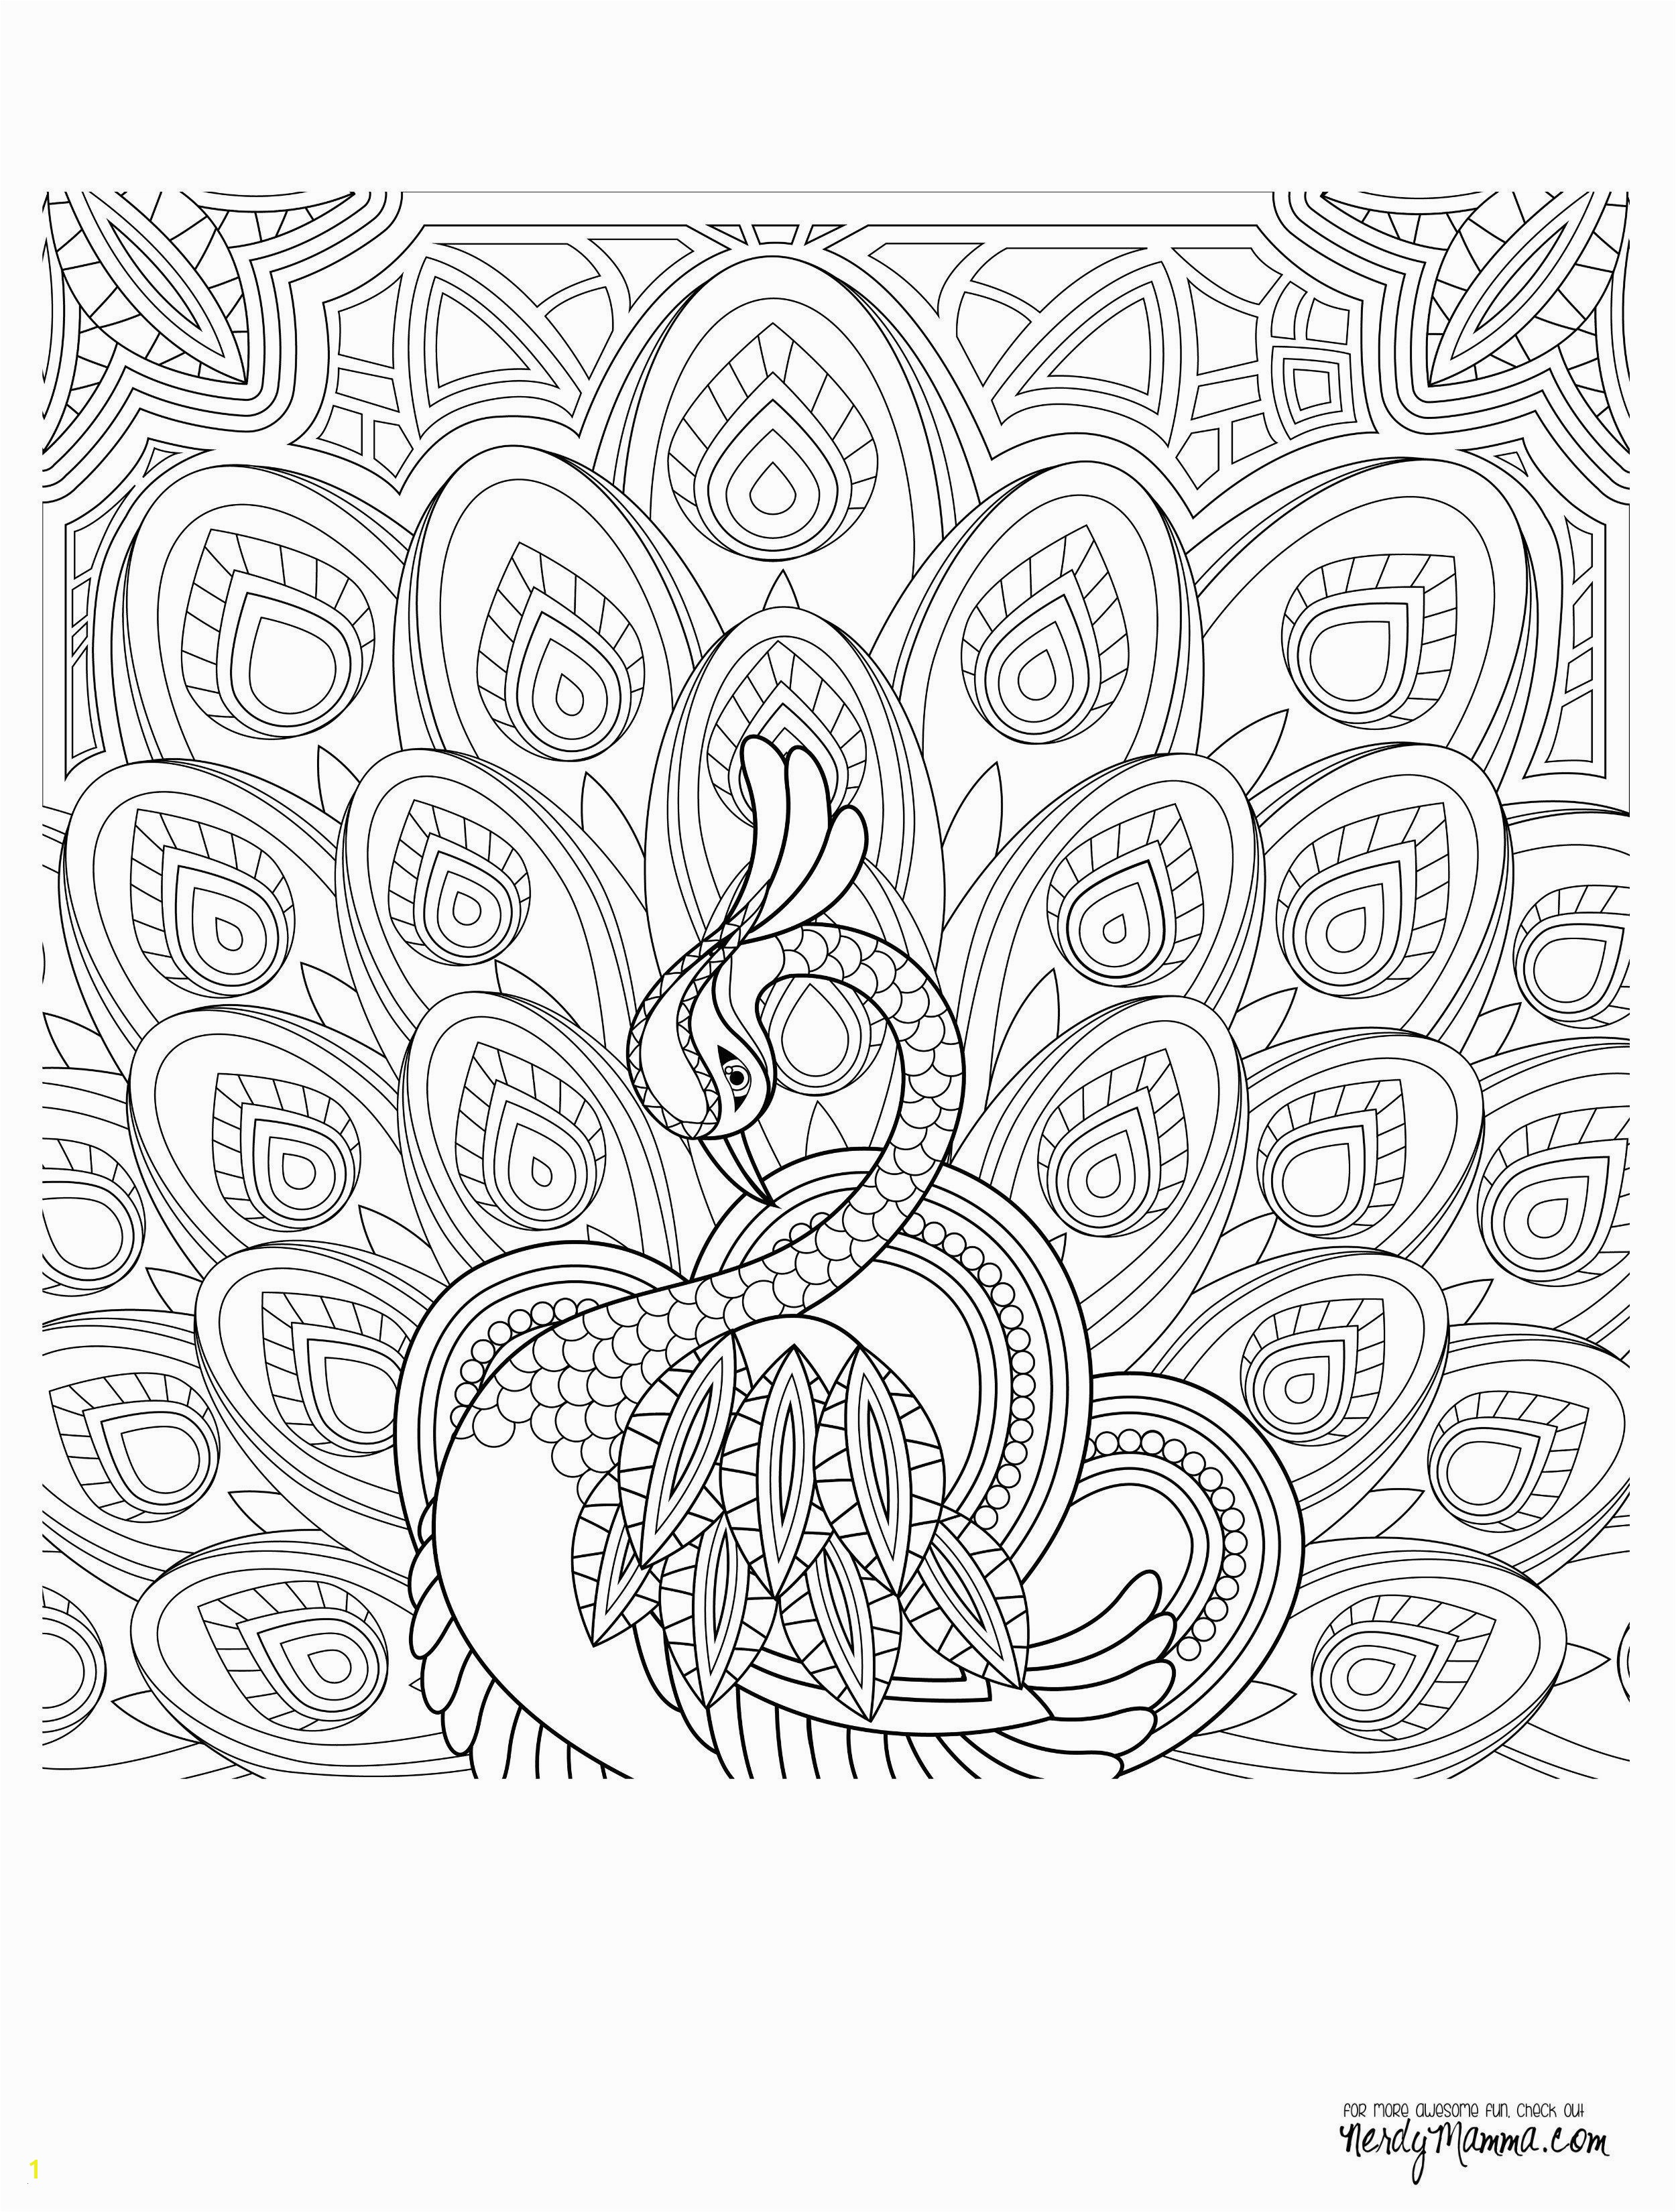 Cyndaquil Coloring Page Valentines Coloring Sheet Awesome Color Coloring Pages Fresh Home